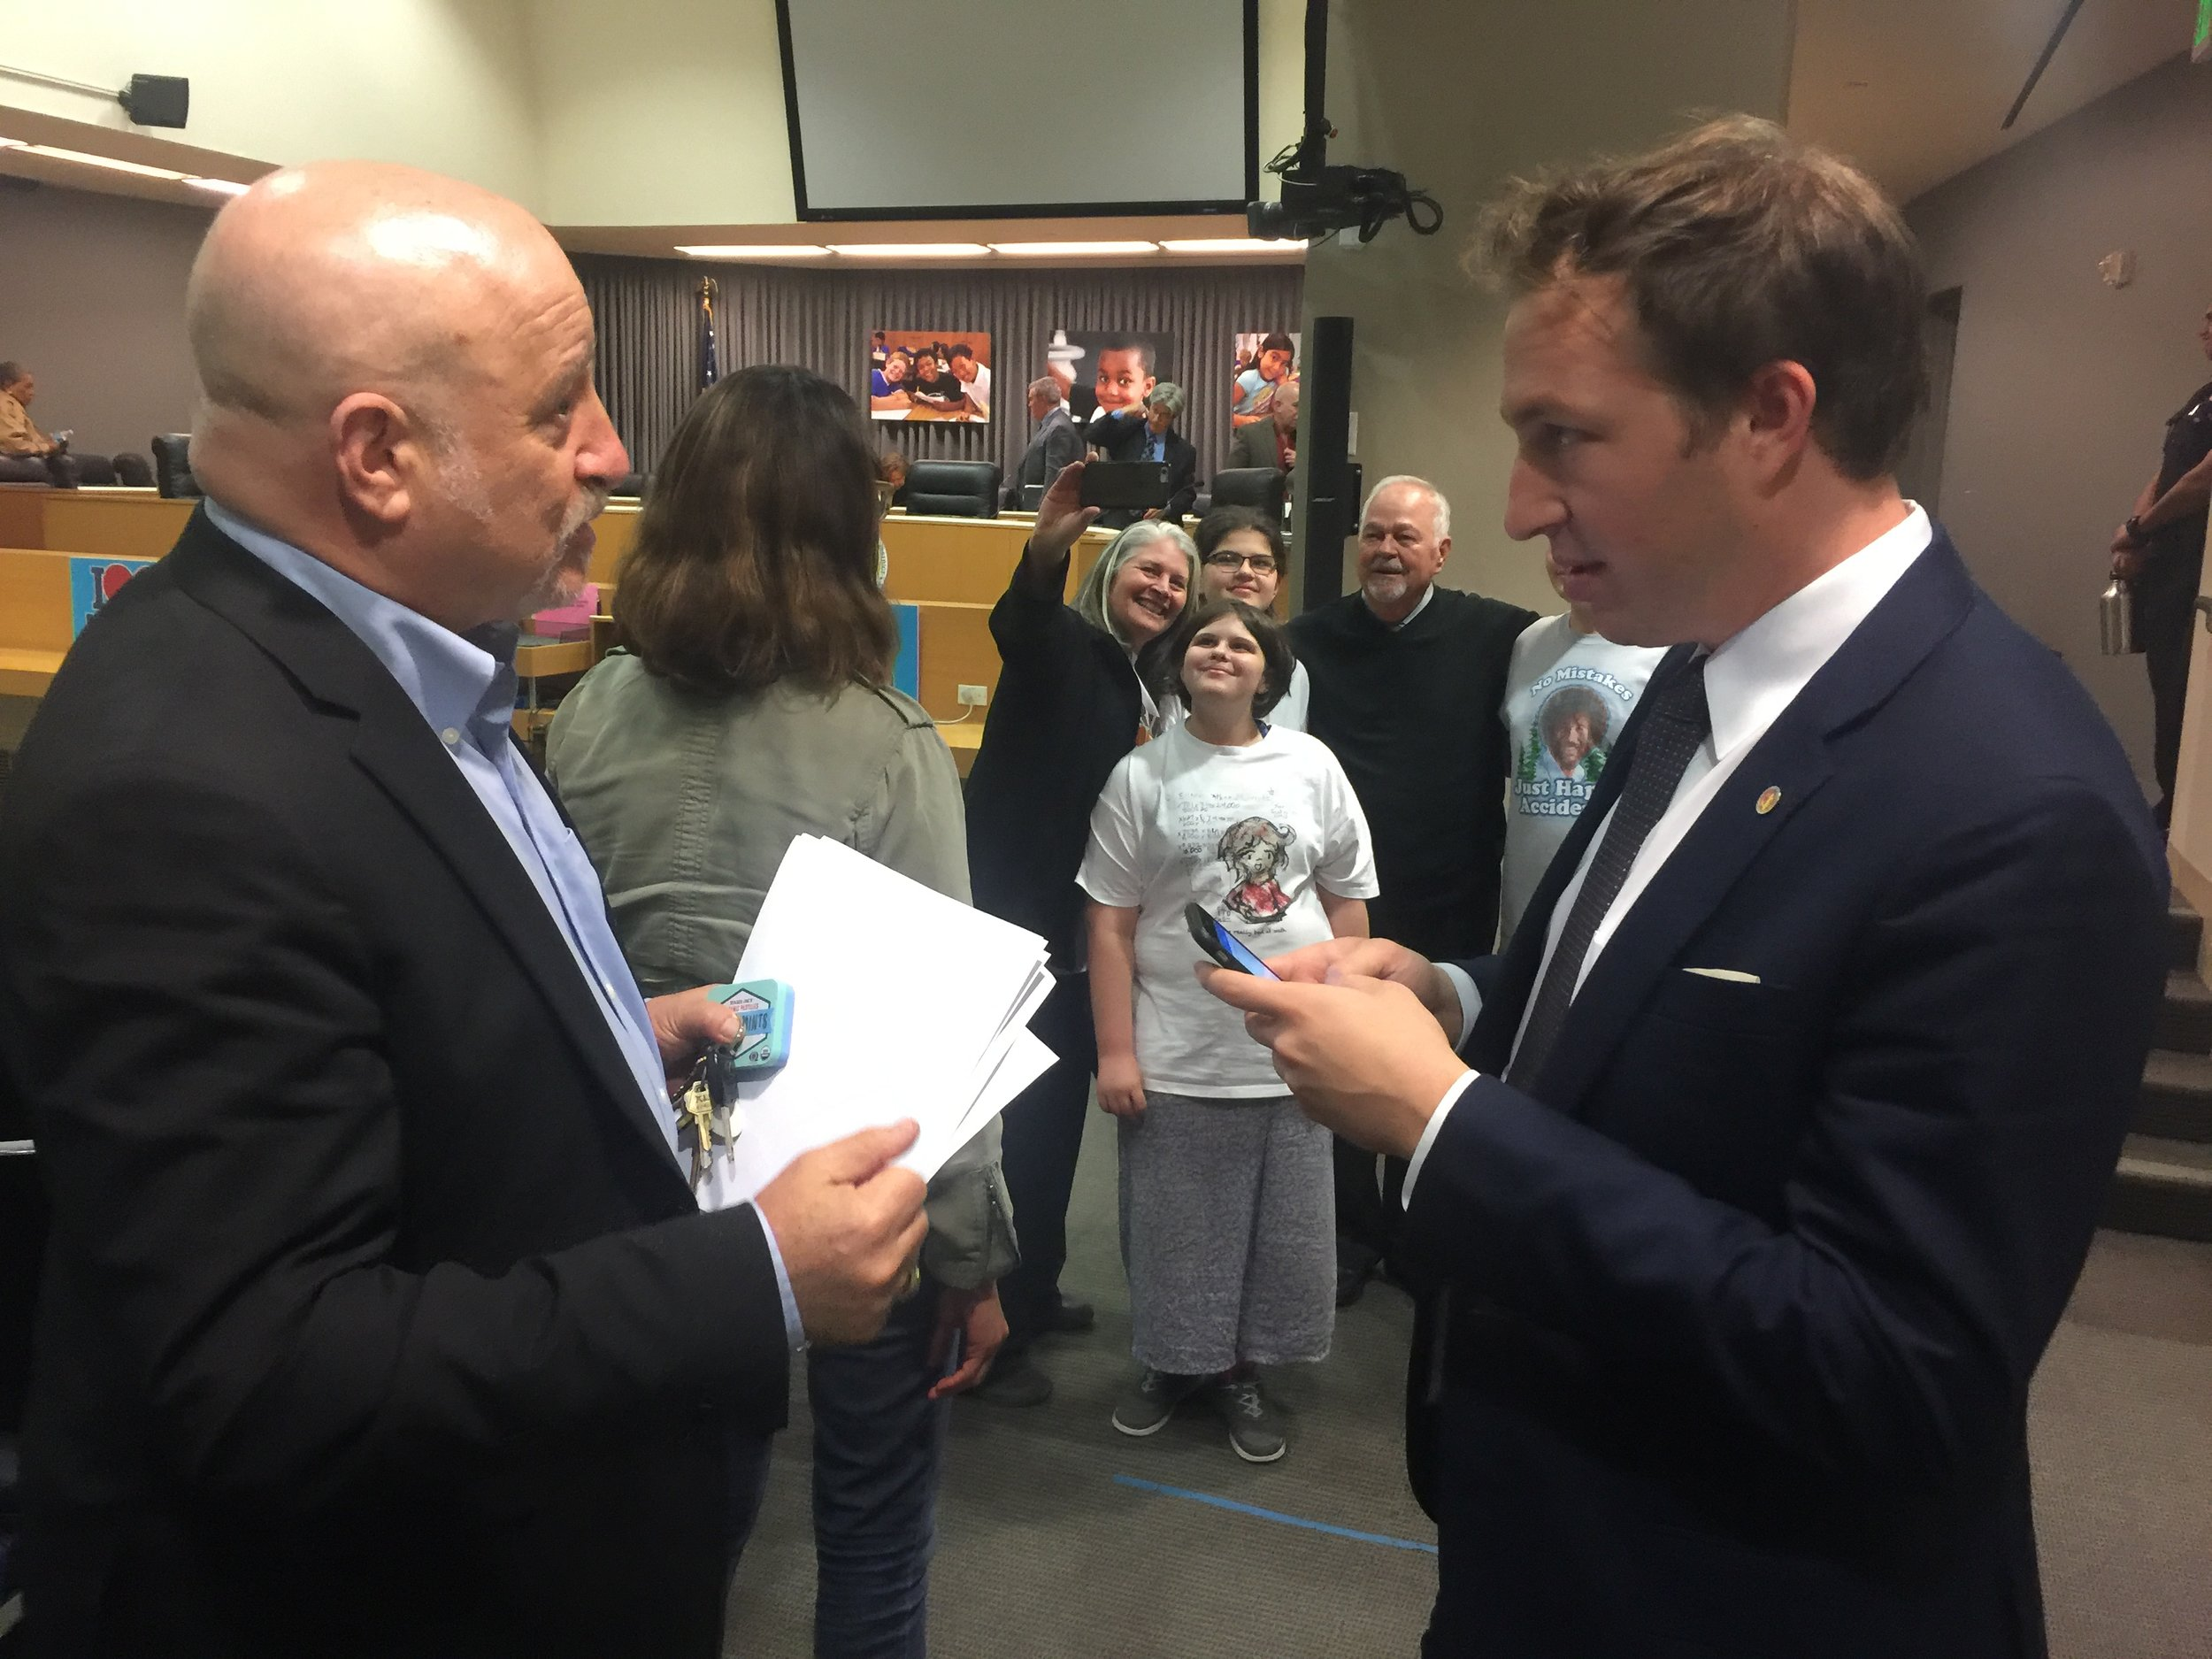 Parent Leader Michael Segel Talks to Board Vice President Nick Melvoin. Parent Harri O'Kelly and her kids chat in the background with Board Member Richard Vladovic